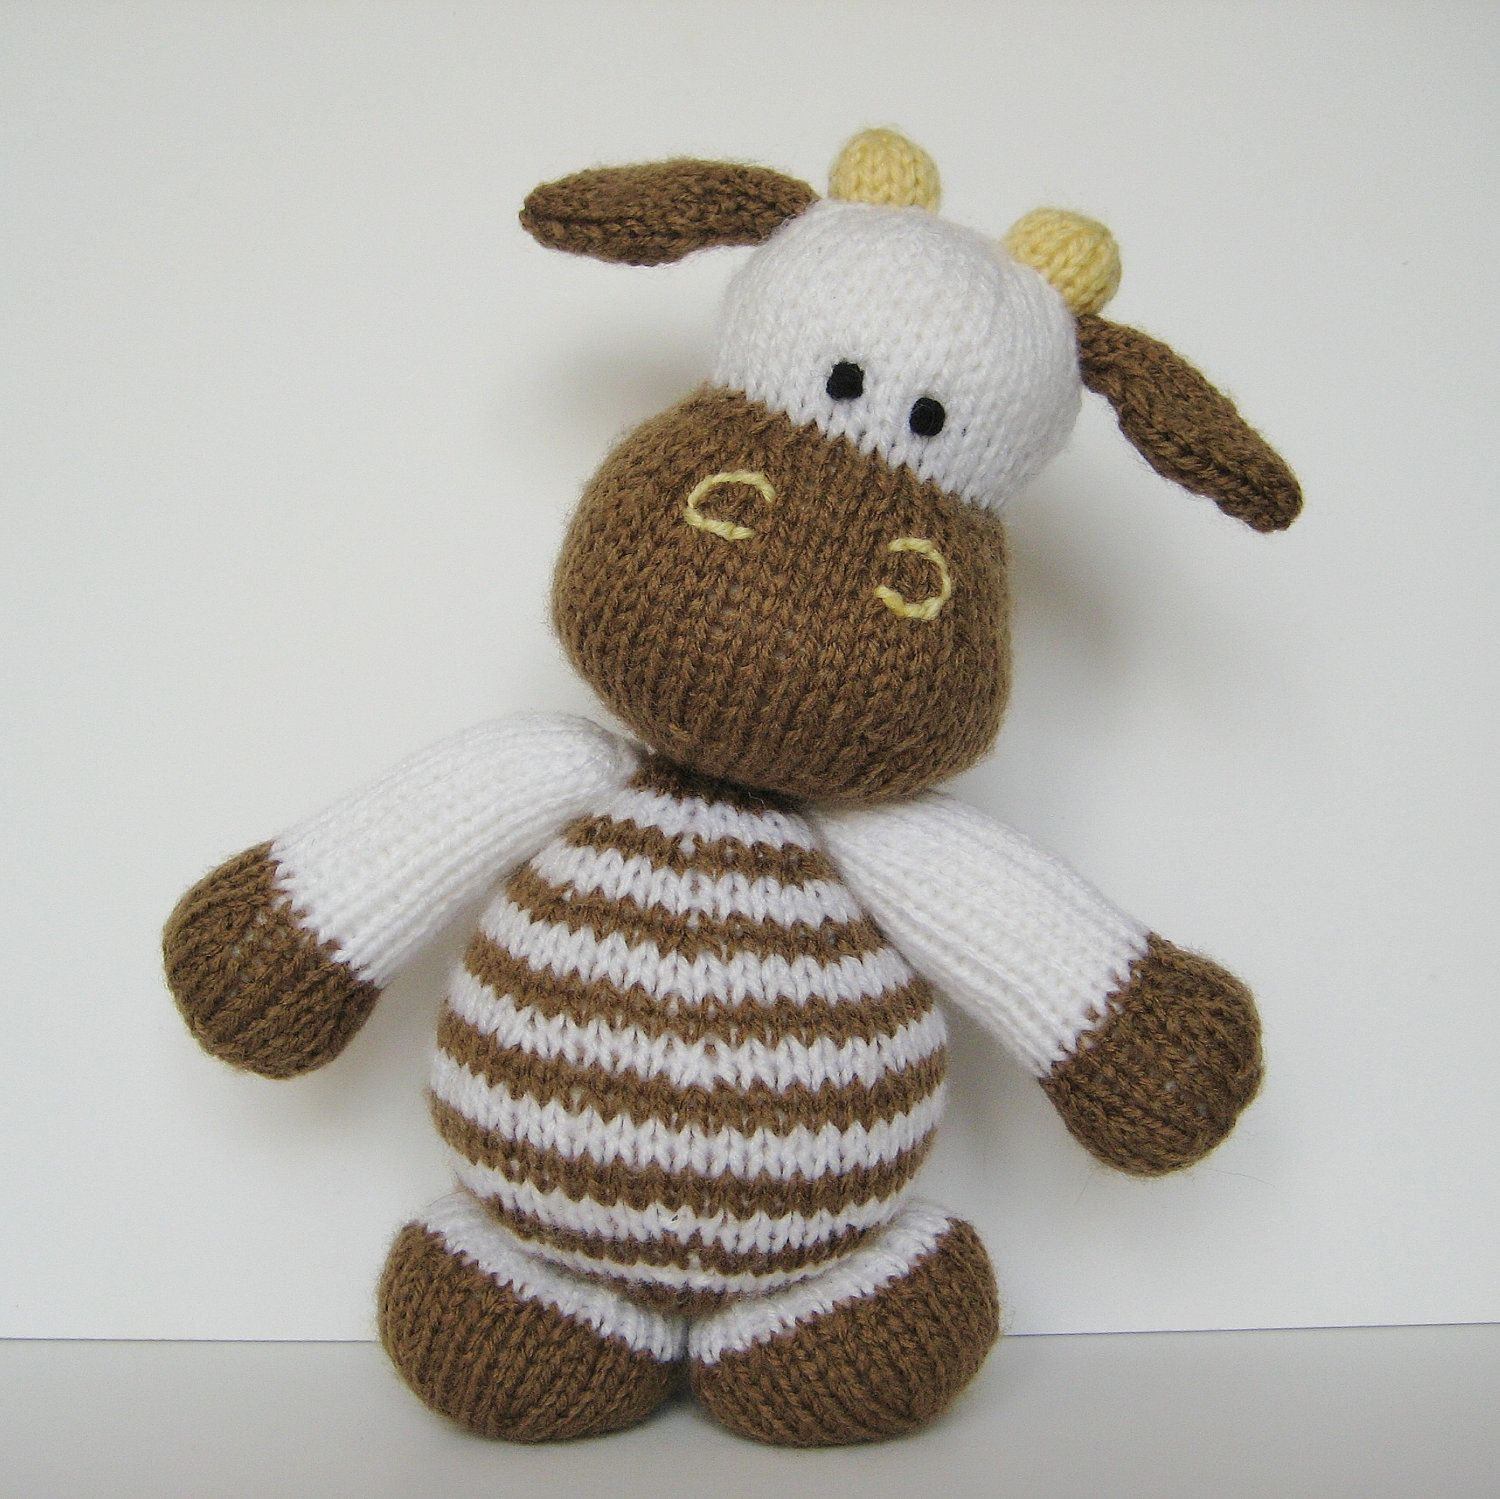 Free Knitting Patterns Animals : Milkshake the Cow toy knitting pattern - knitted farm animals to knit with th...